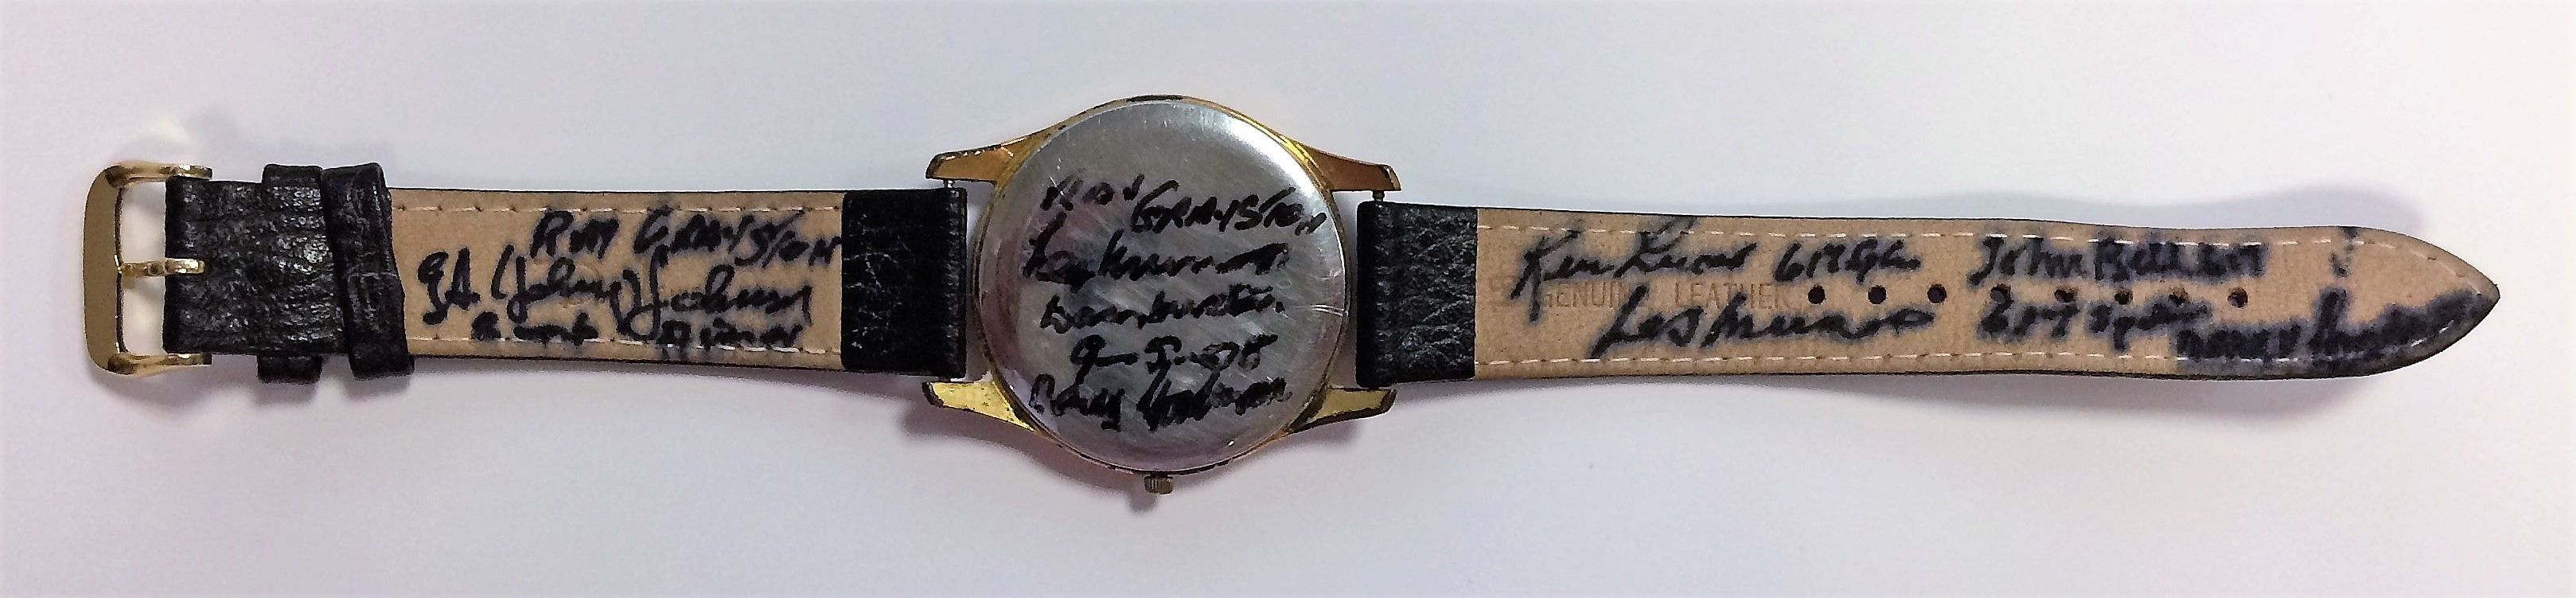 DAMBUSTERS THE An unusual commemorative wrist watch and